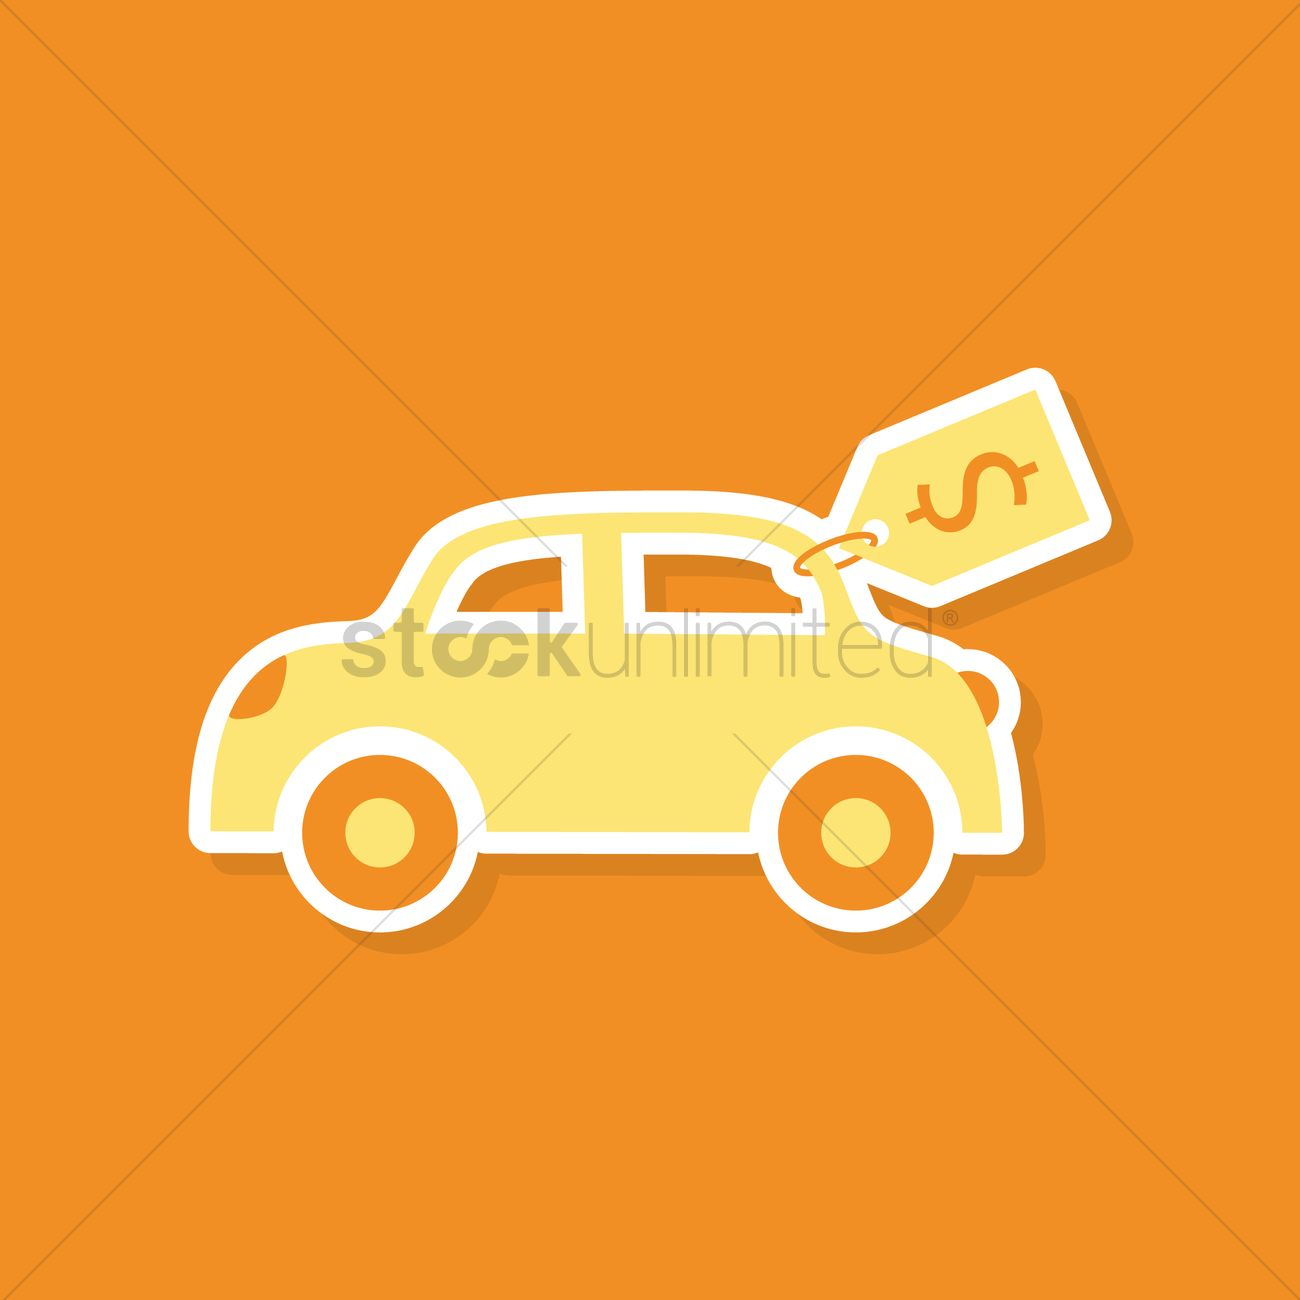 Free Car with price tag Vector Image.